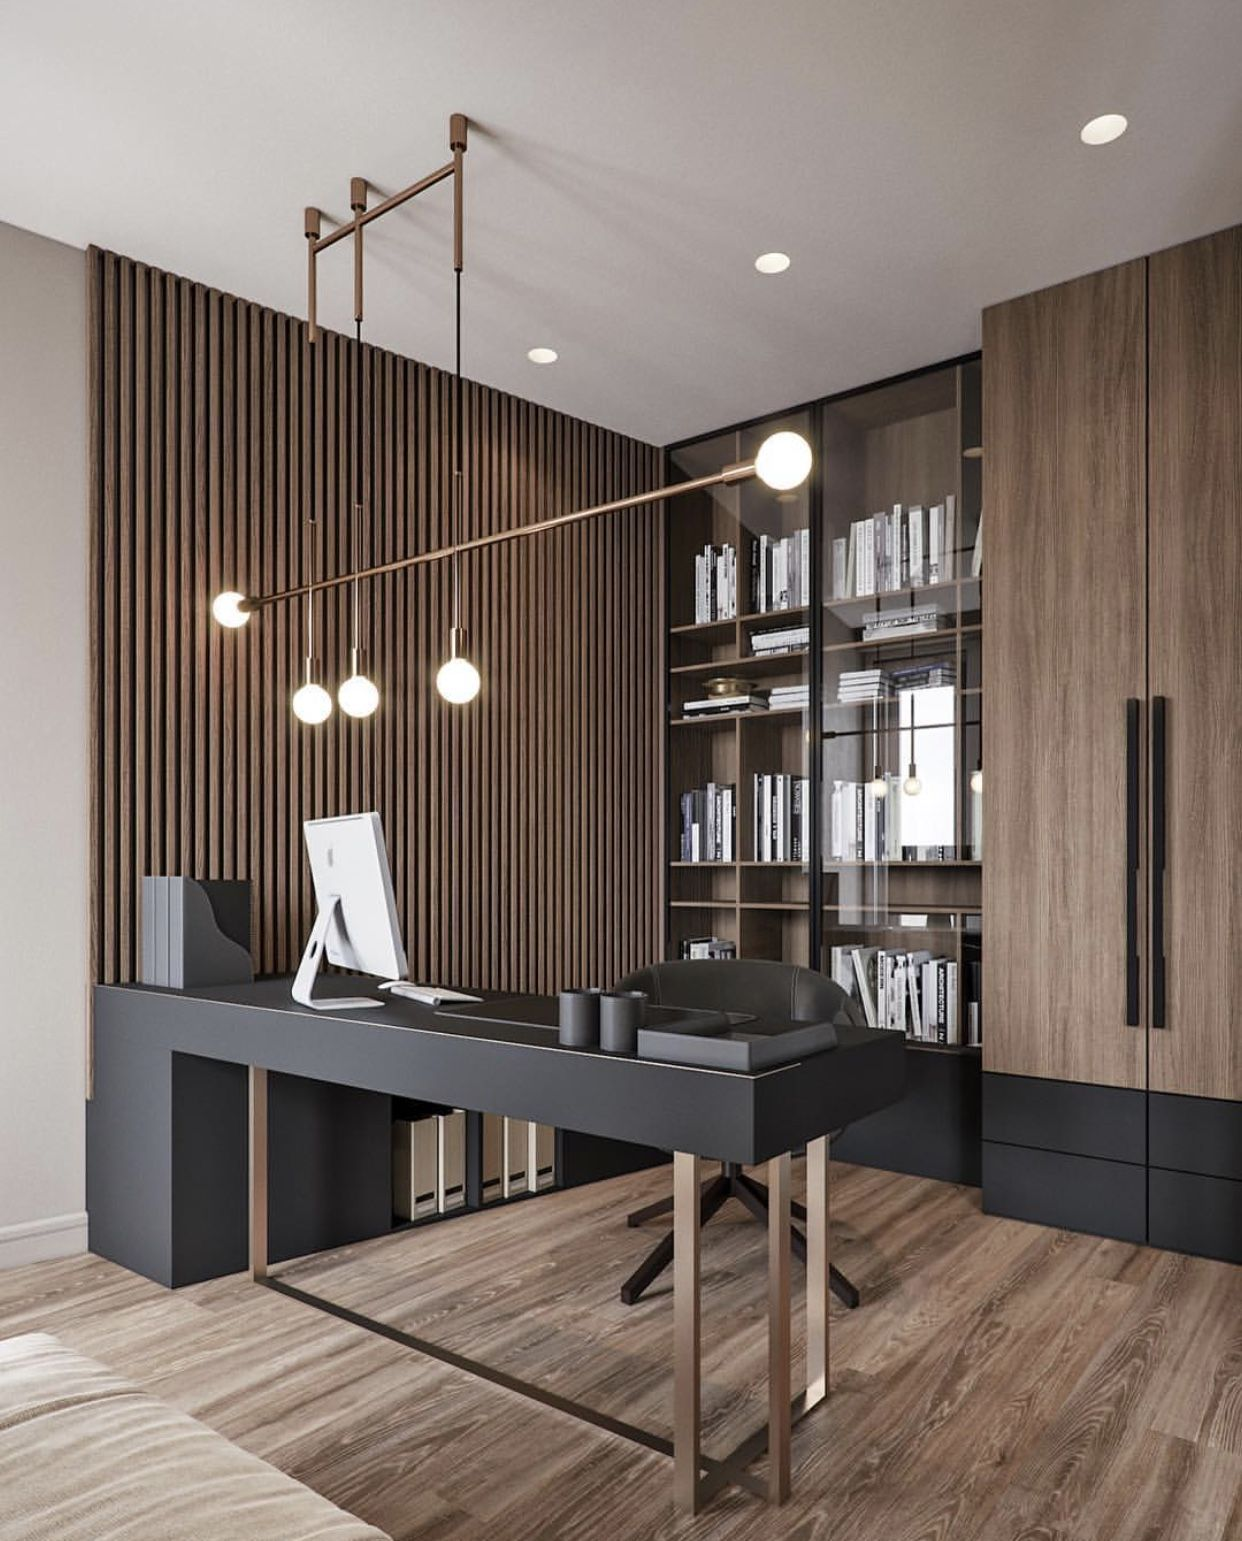 I Know It Is Not The Kitchen Pic But I Like The Brown Wood Similar To The Cabinet Finish I Pick Home Office Design Modern Office Design Office Interior Design